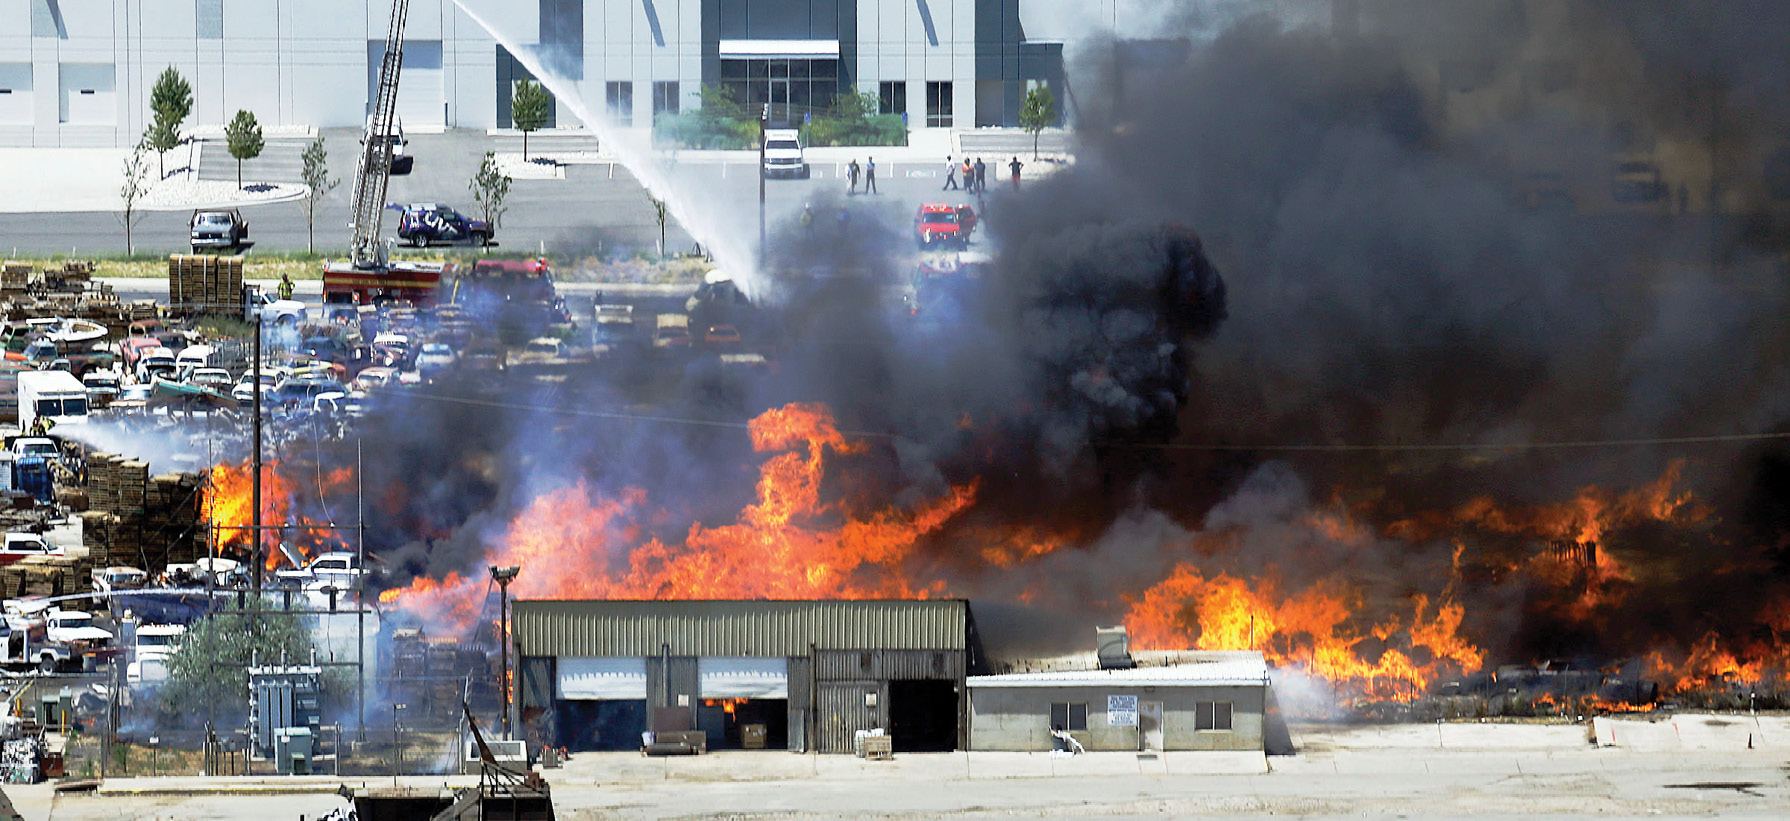 Firefighters battle a blaze at a commercial storage yard in Utah.